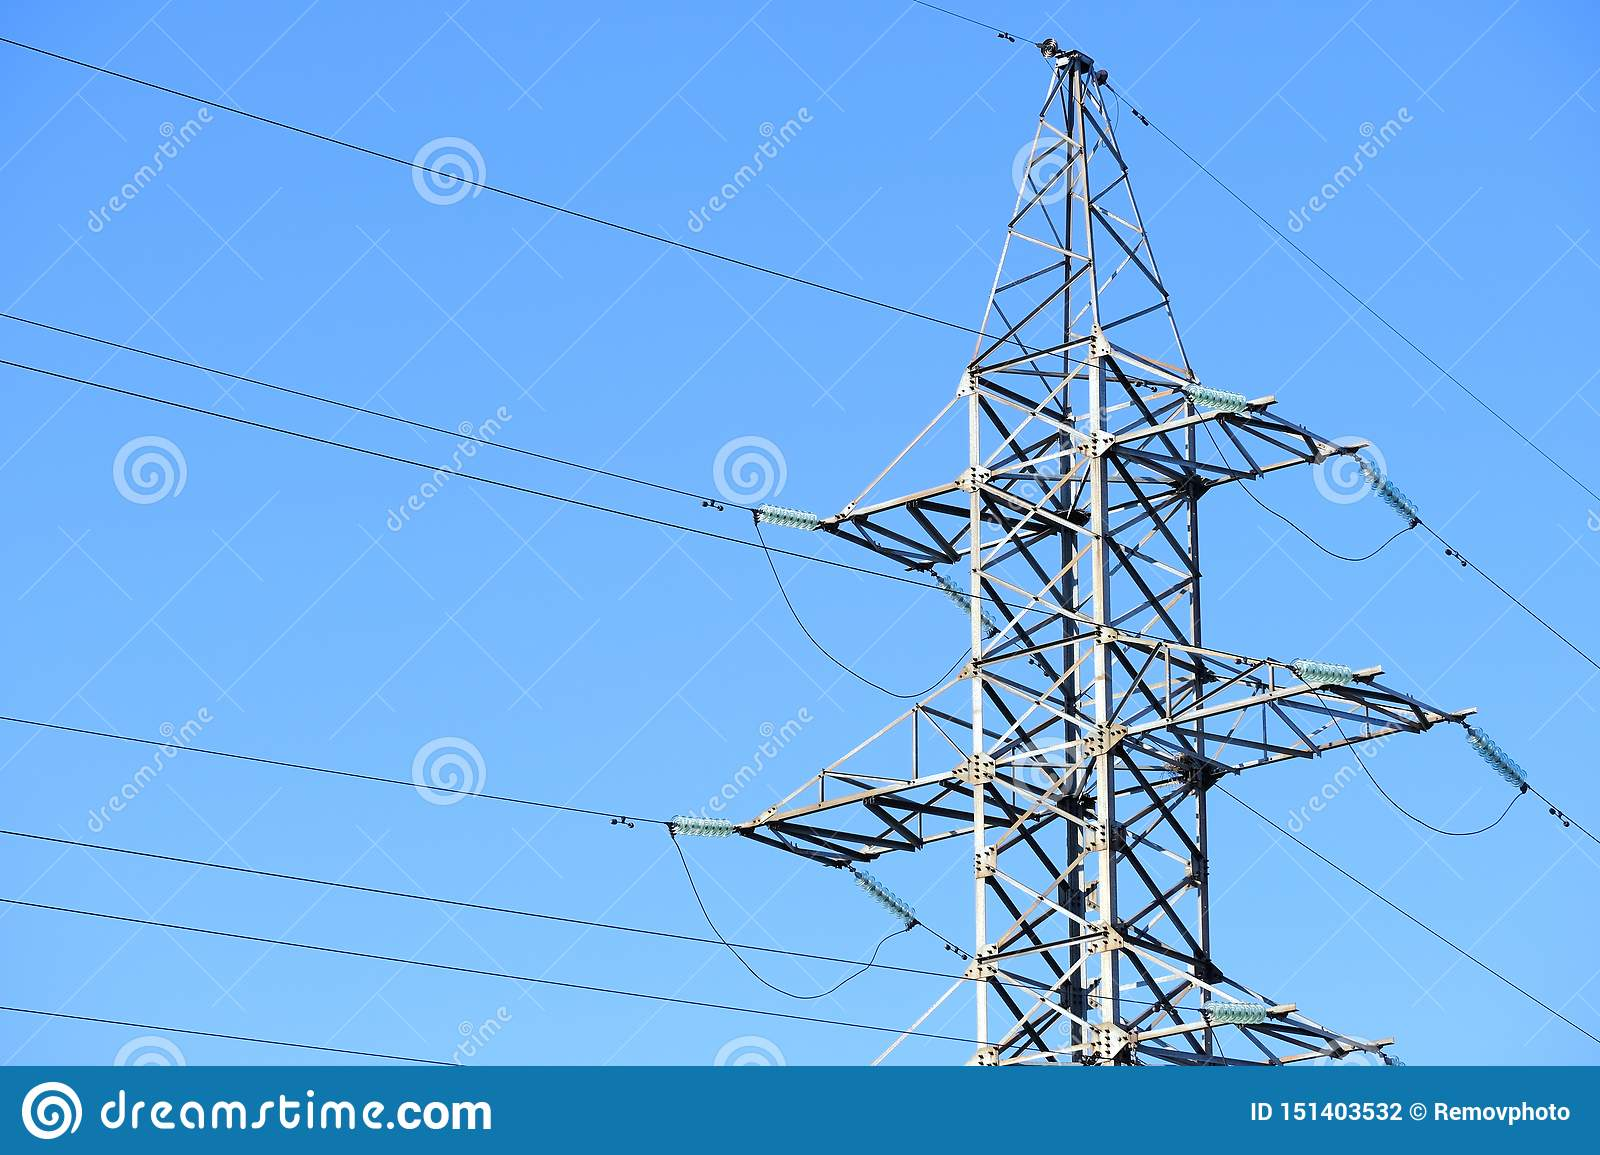 High voltage power line or tower power lines against a blue sky